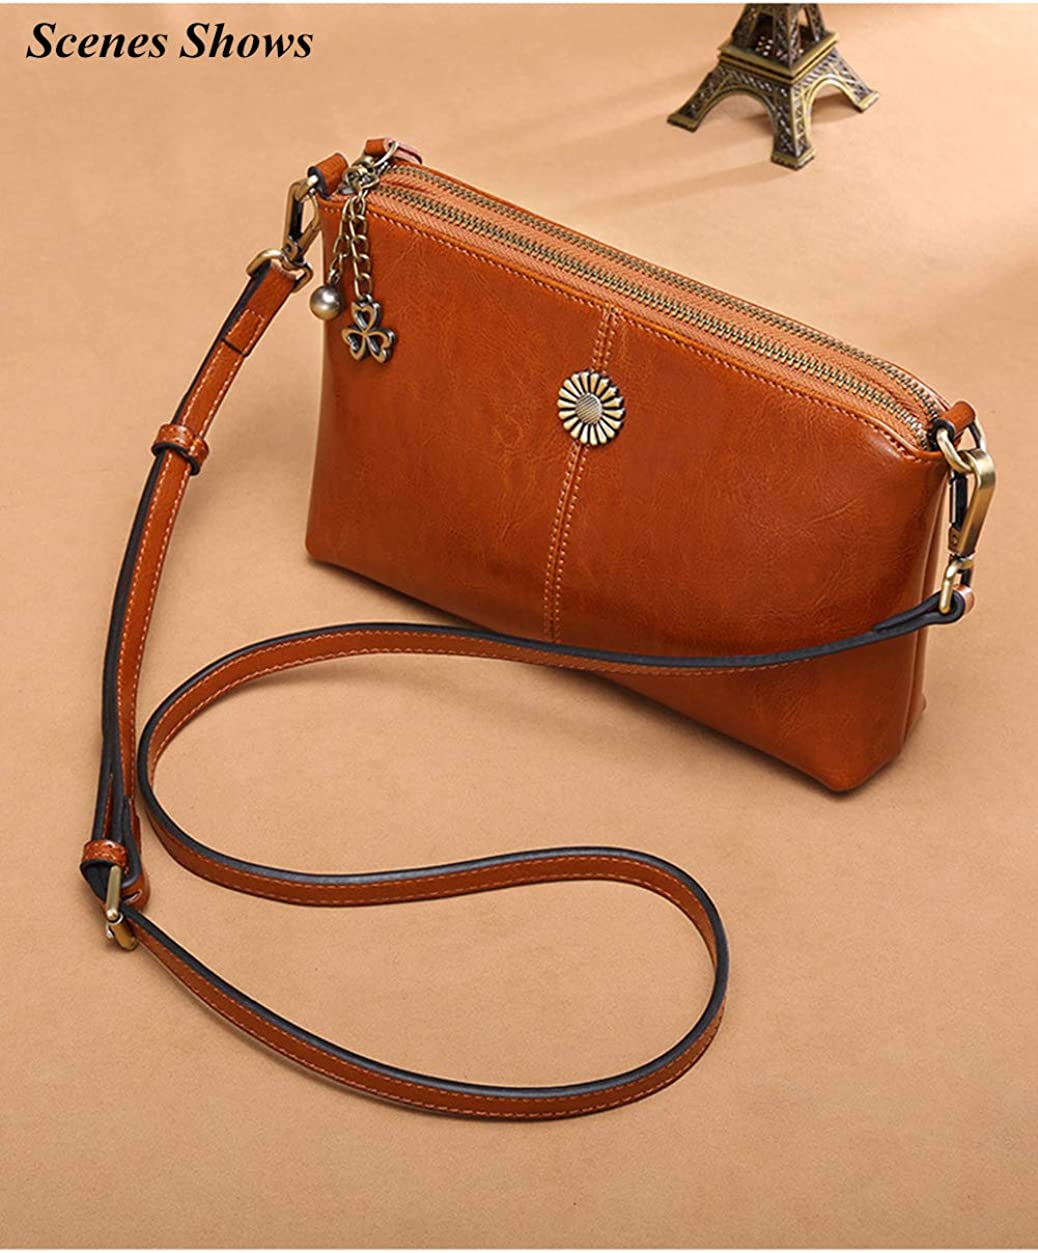 CHSYU Cross-body Womens Genuine Leather Tote Shoulder Bag with Sun Flower Nameplate and Clover Zipper